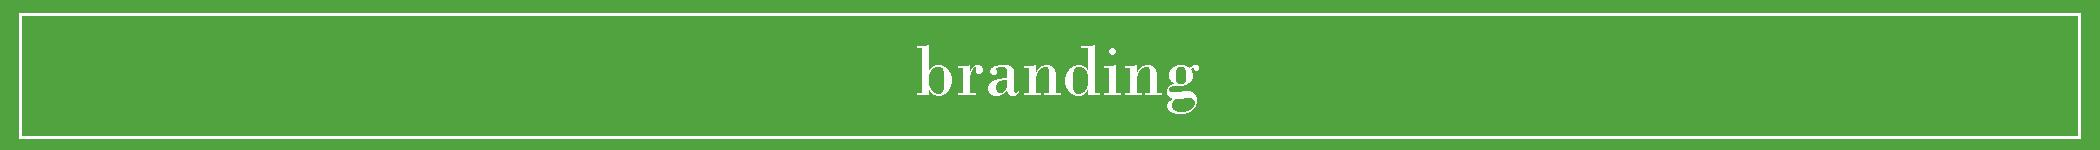 business by barnhill header branding.jpg